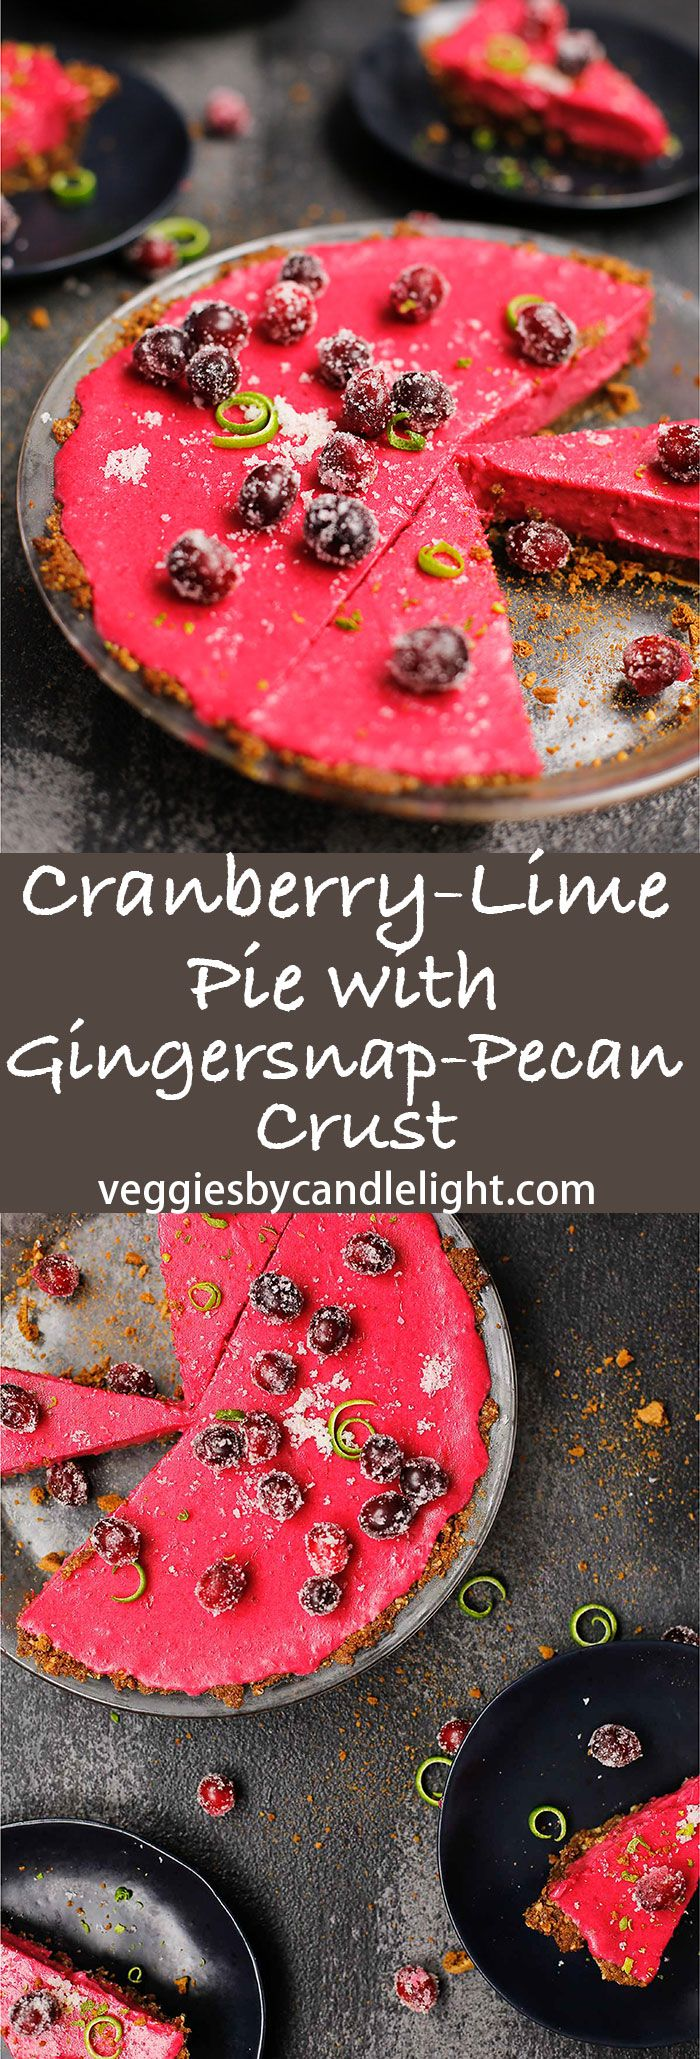 Cranberry-Lime Pie with Gingersnap-Pecan Crust - A fun and incredibly delicious pink pie, which looks like it took a jaunt through a grassy meadow (lime zest!) and forgot to dust itself off